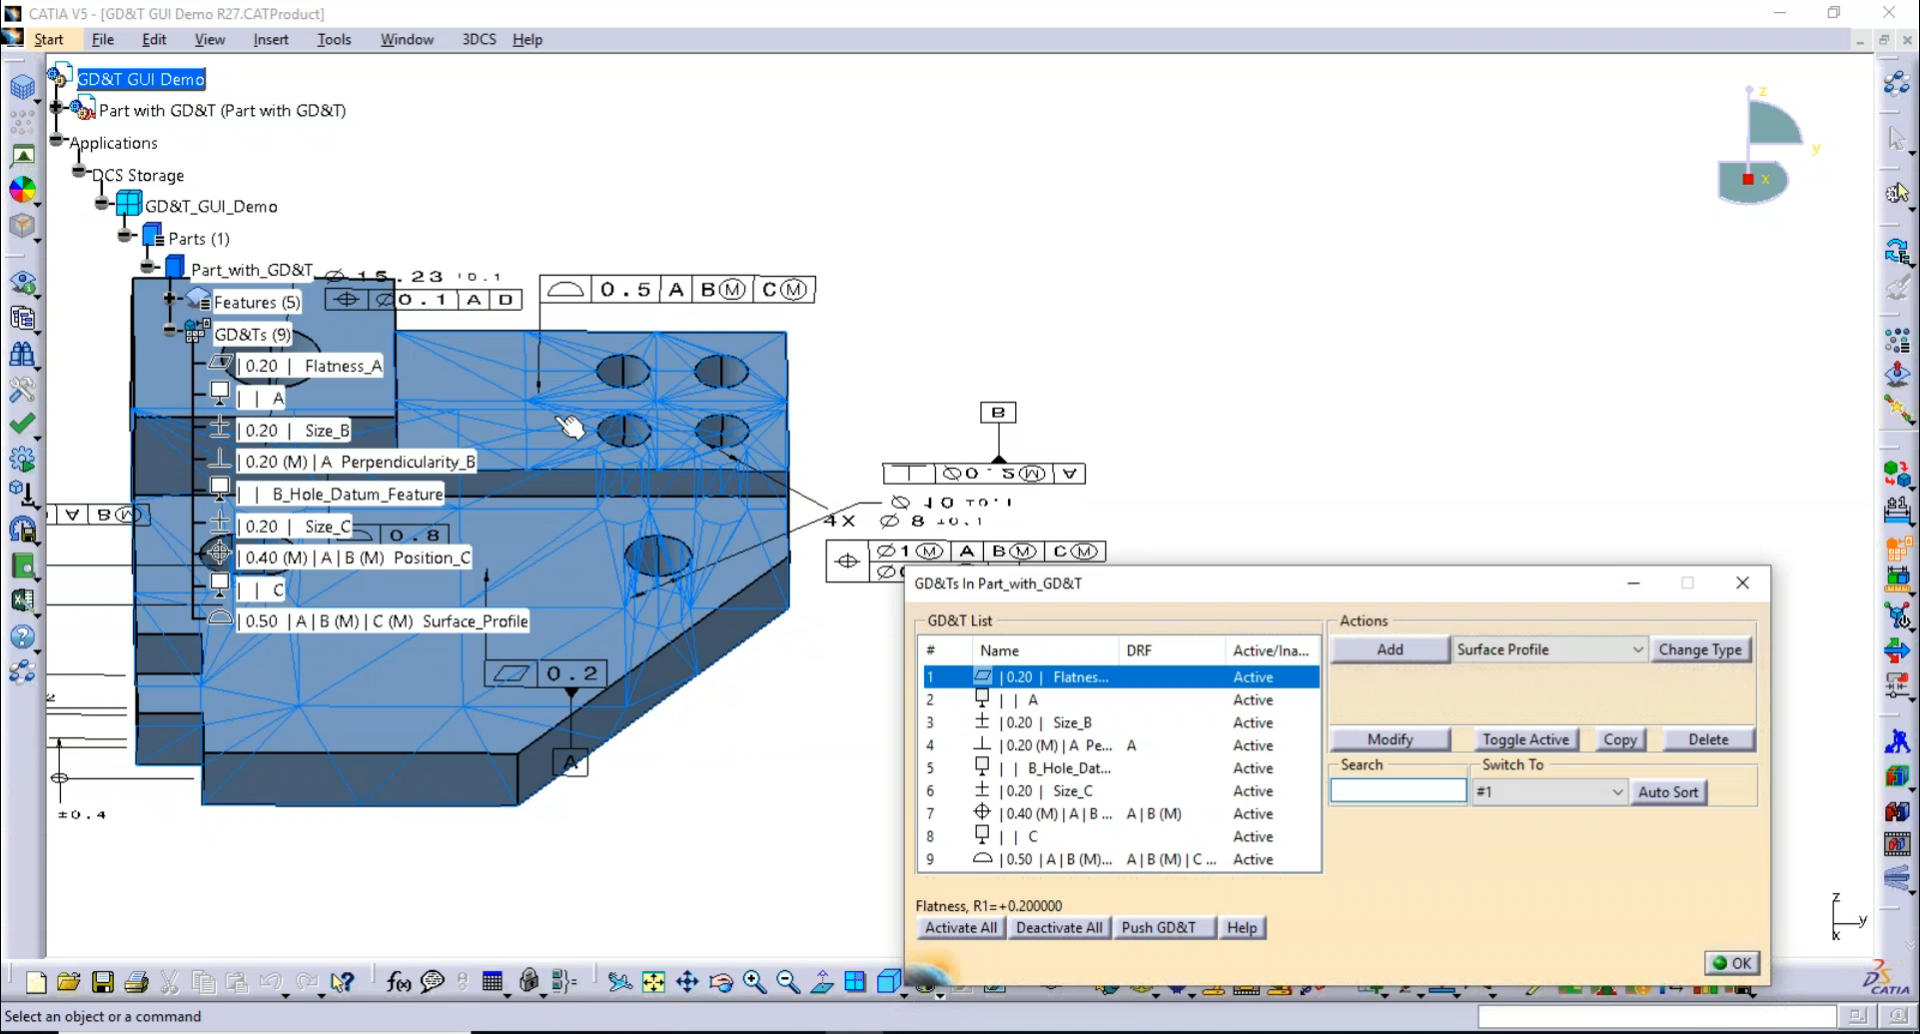 3DCS Version 7.6 NOW AVAILABLE - Learn About New Features in the First Webinar